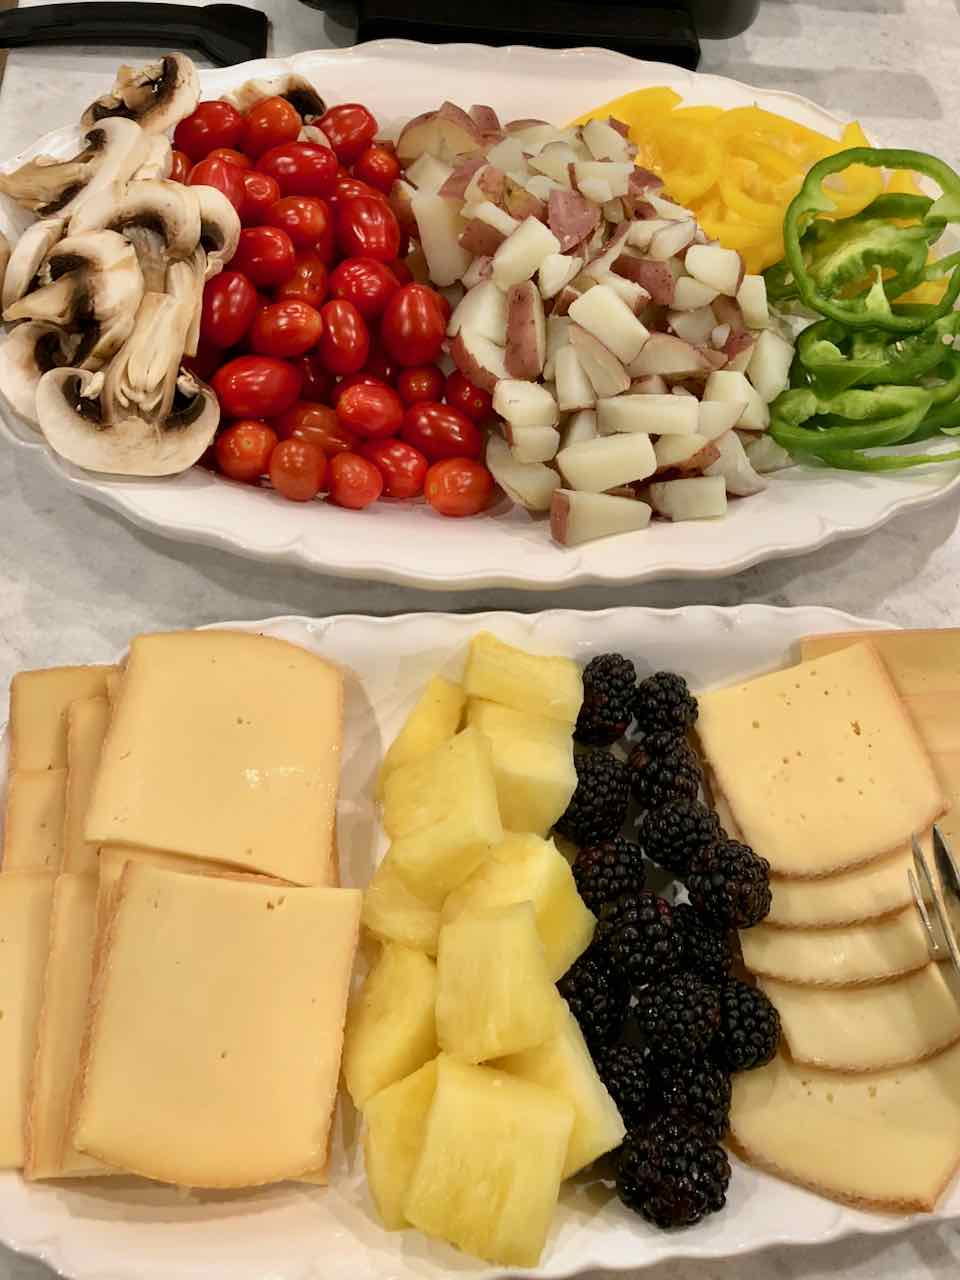 Raclette for Christmas or New Years. Perfect meal for a group dinner party or easy dinner for the family!